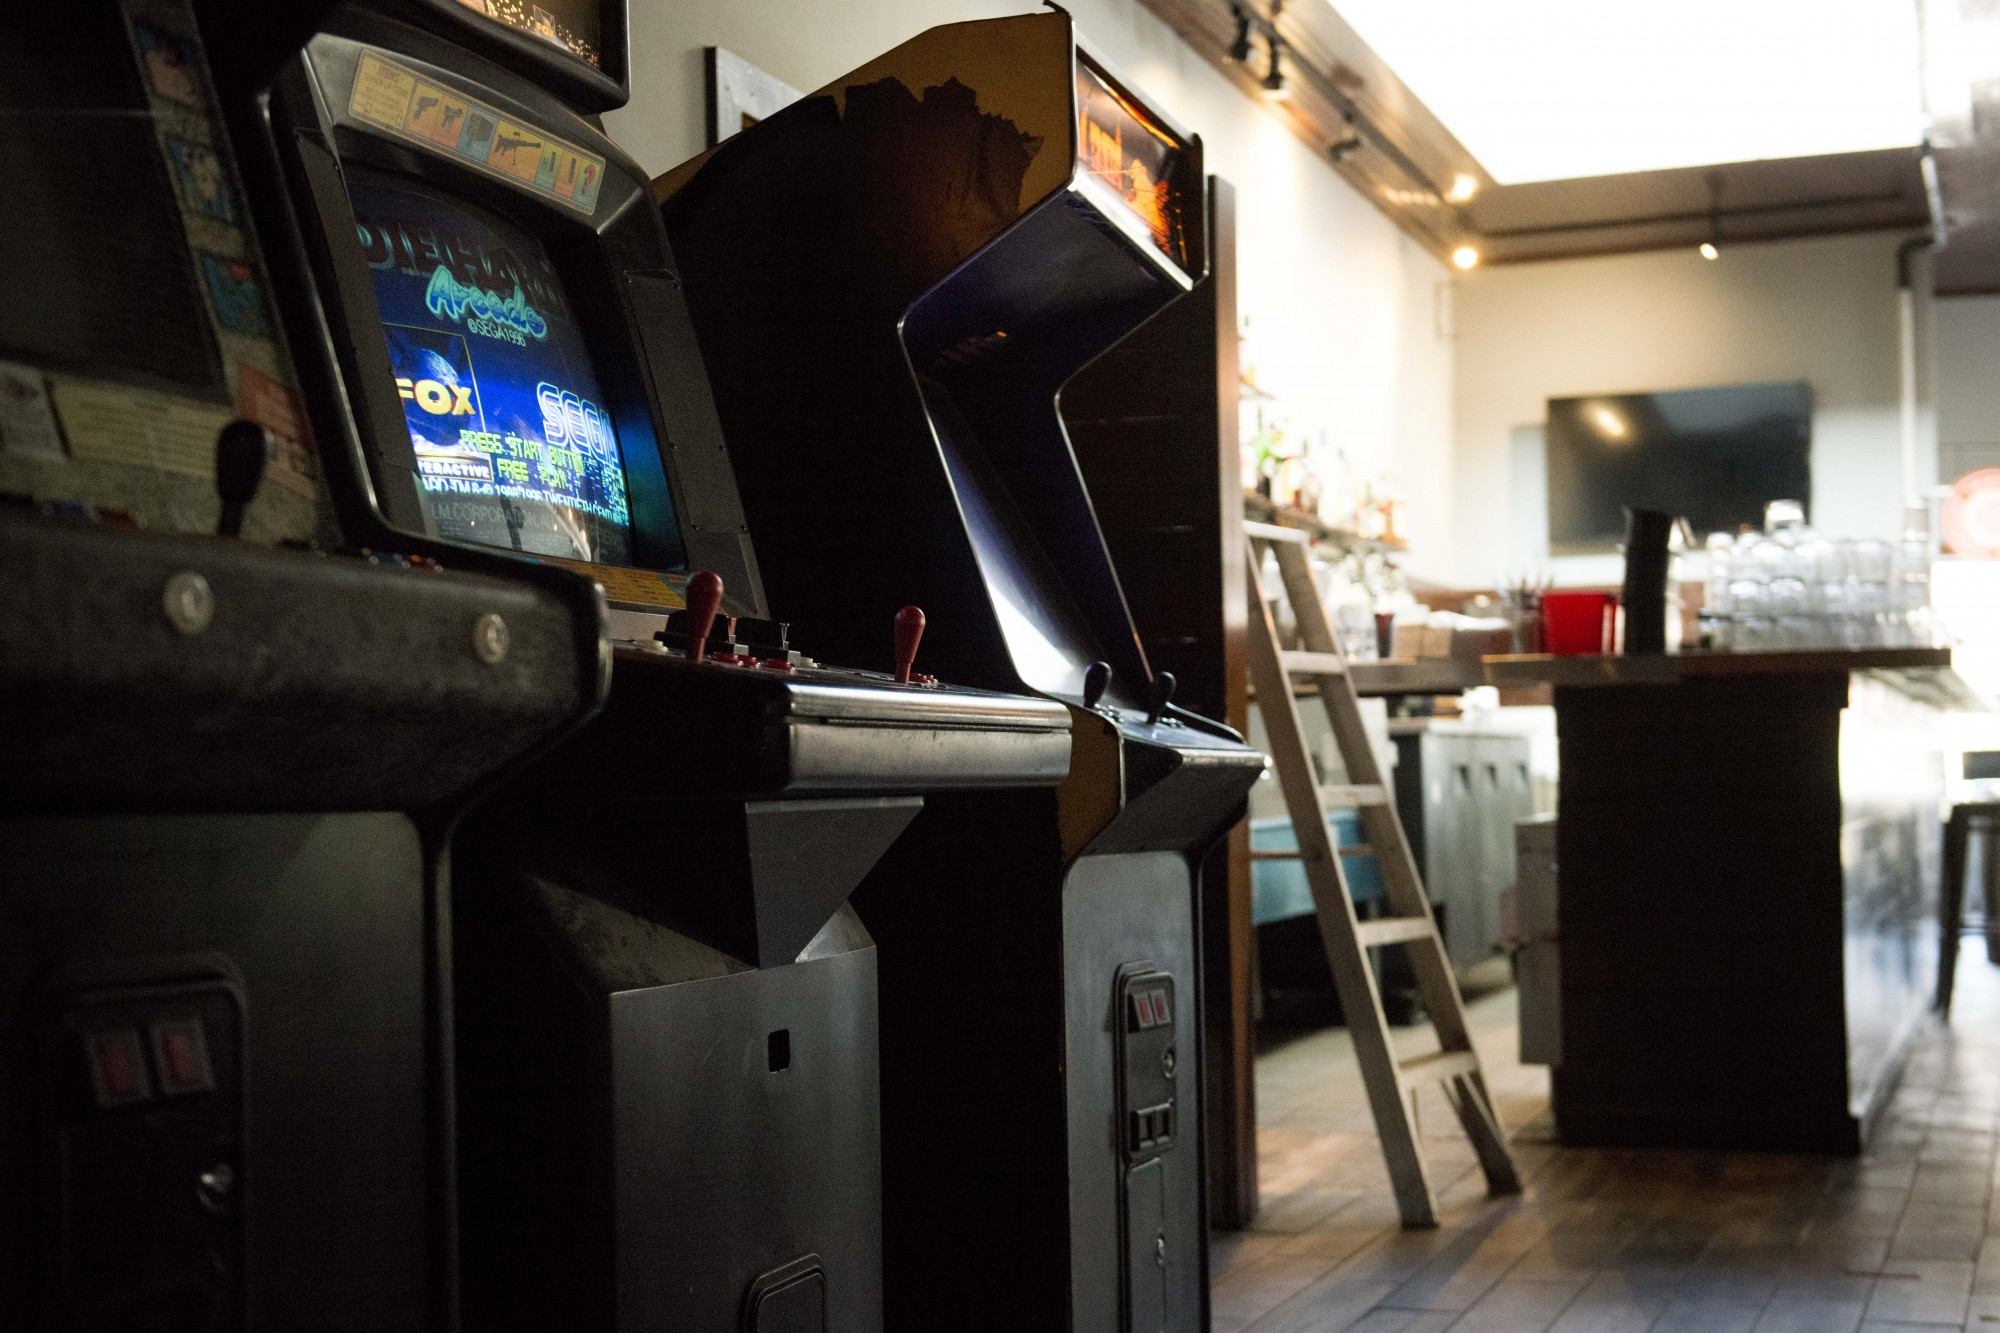 The interiors of NE-Arcade in North-East Minneapolis, which is set to open Friday, as seen on Saturday, Nov. 16.